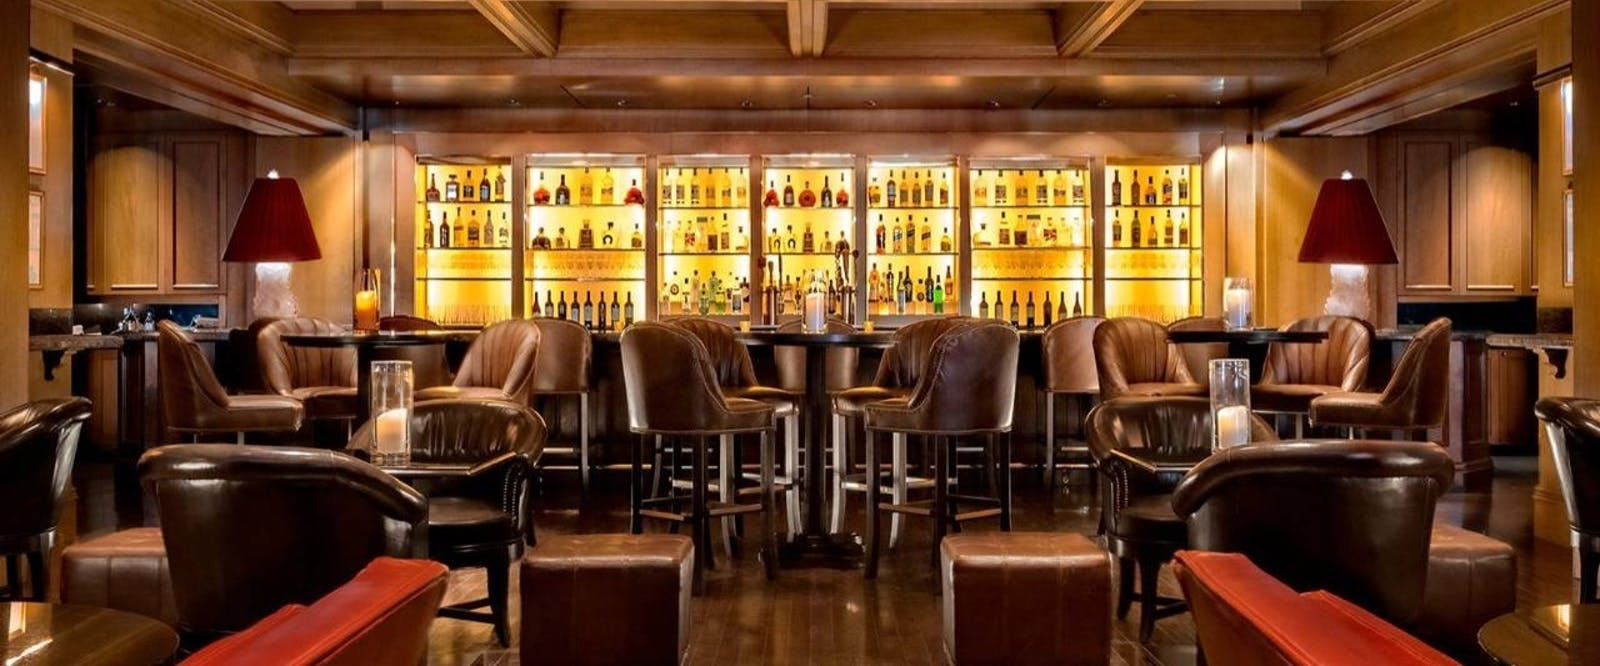 The Bristol Bar at Four Seasons Hotel Boston, New England